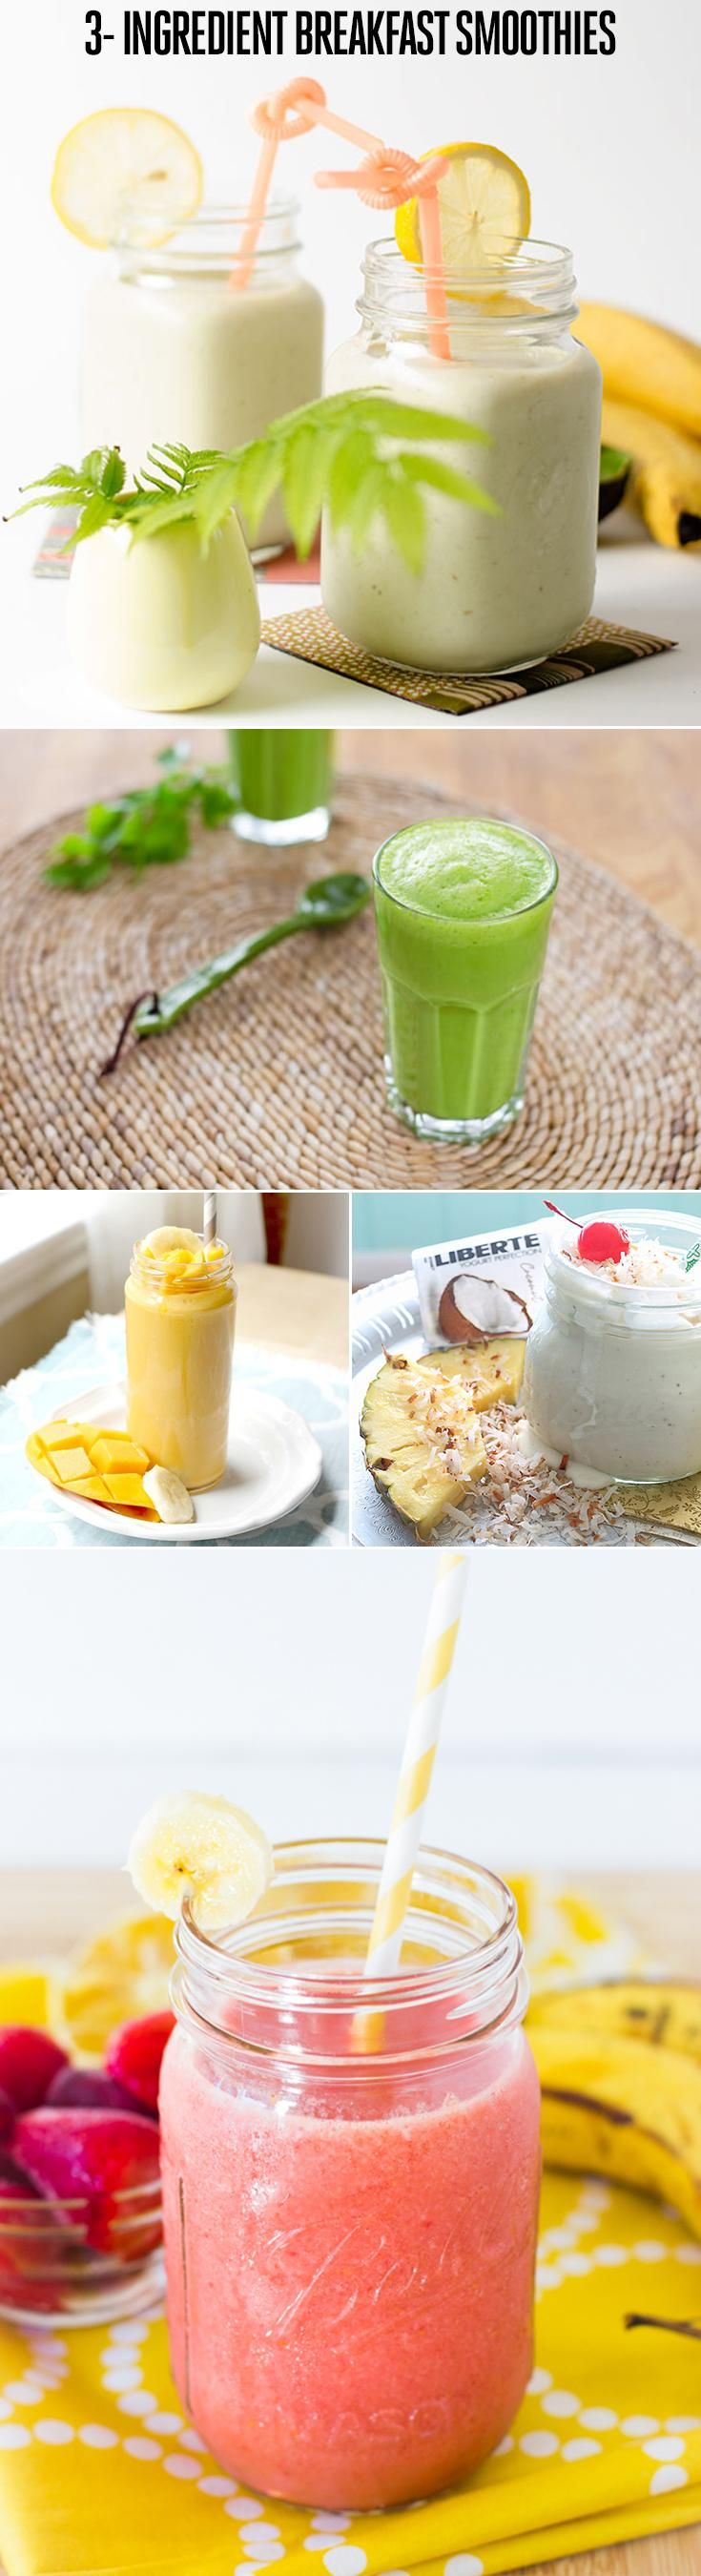 You'll never believe these delicious breakfast smoothies only have three ingredients in them...